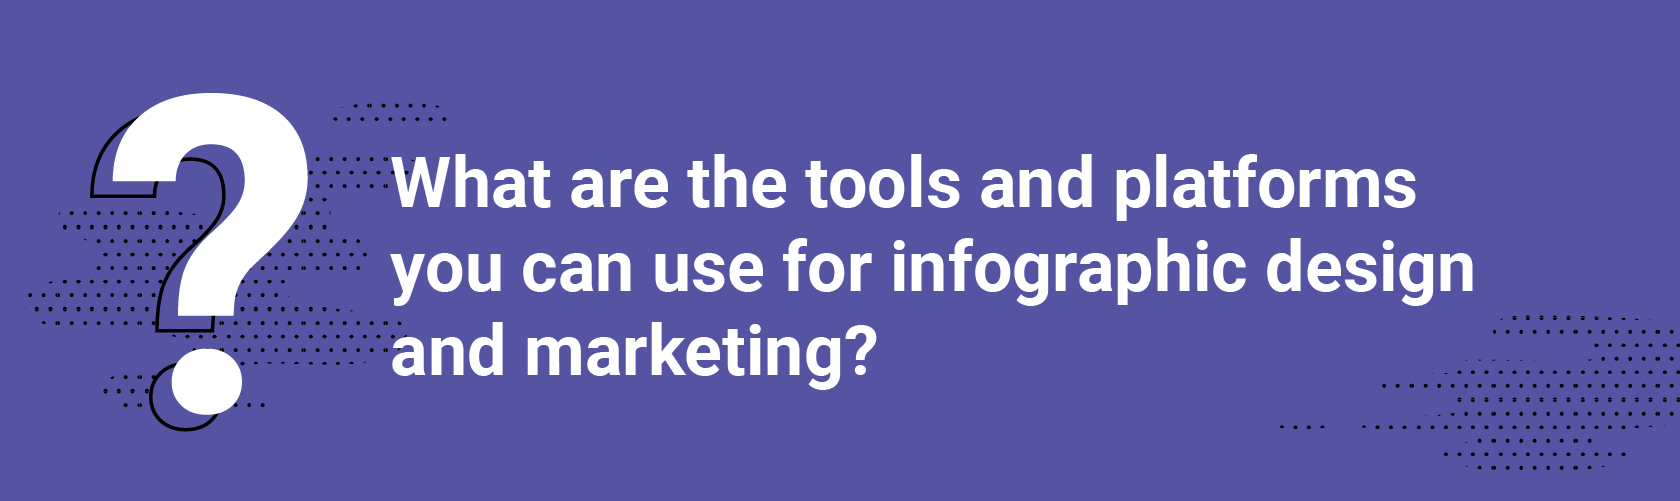 What are the tools and platforms you can use for infographic design and marketing?